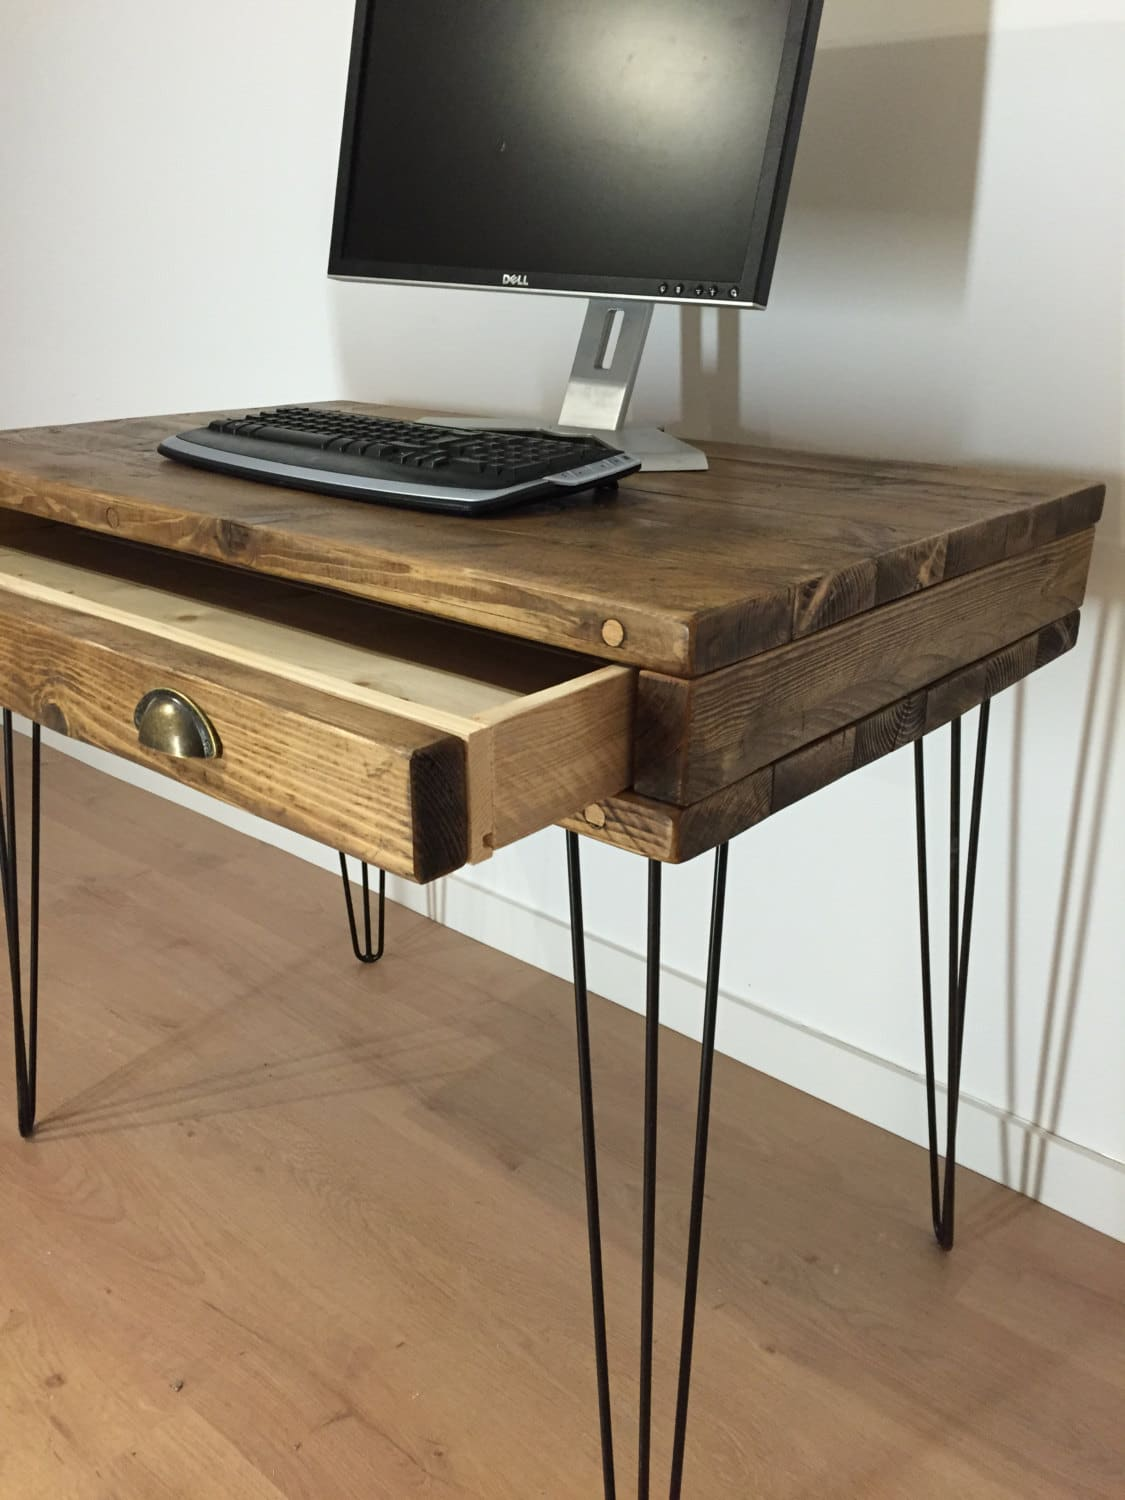 table enthralling school the duluthhomeloan coffee legs reclaimed antique wood of metal best pallet barnwood with desk repurposed